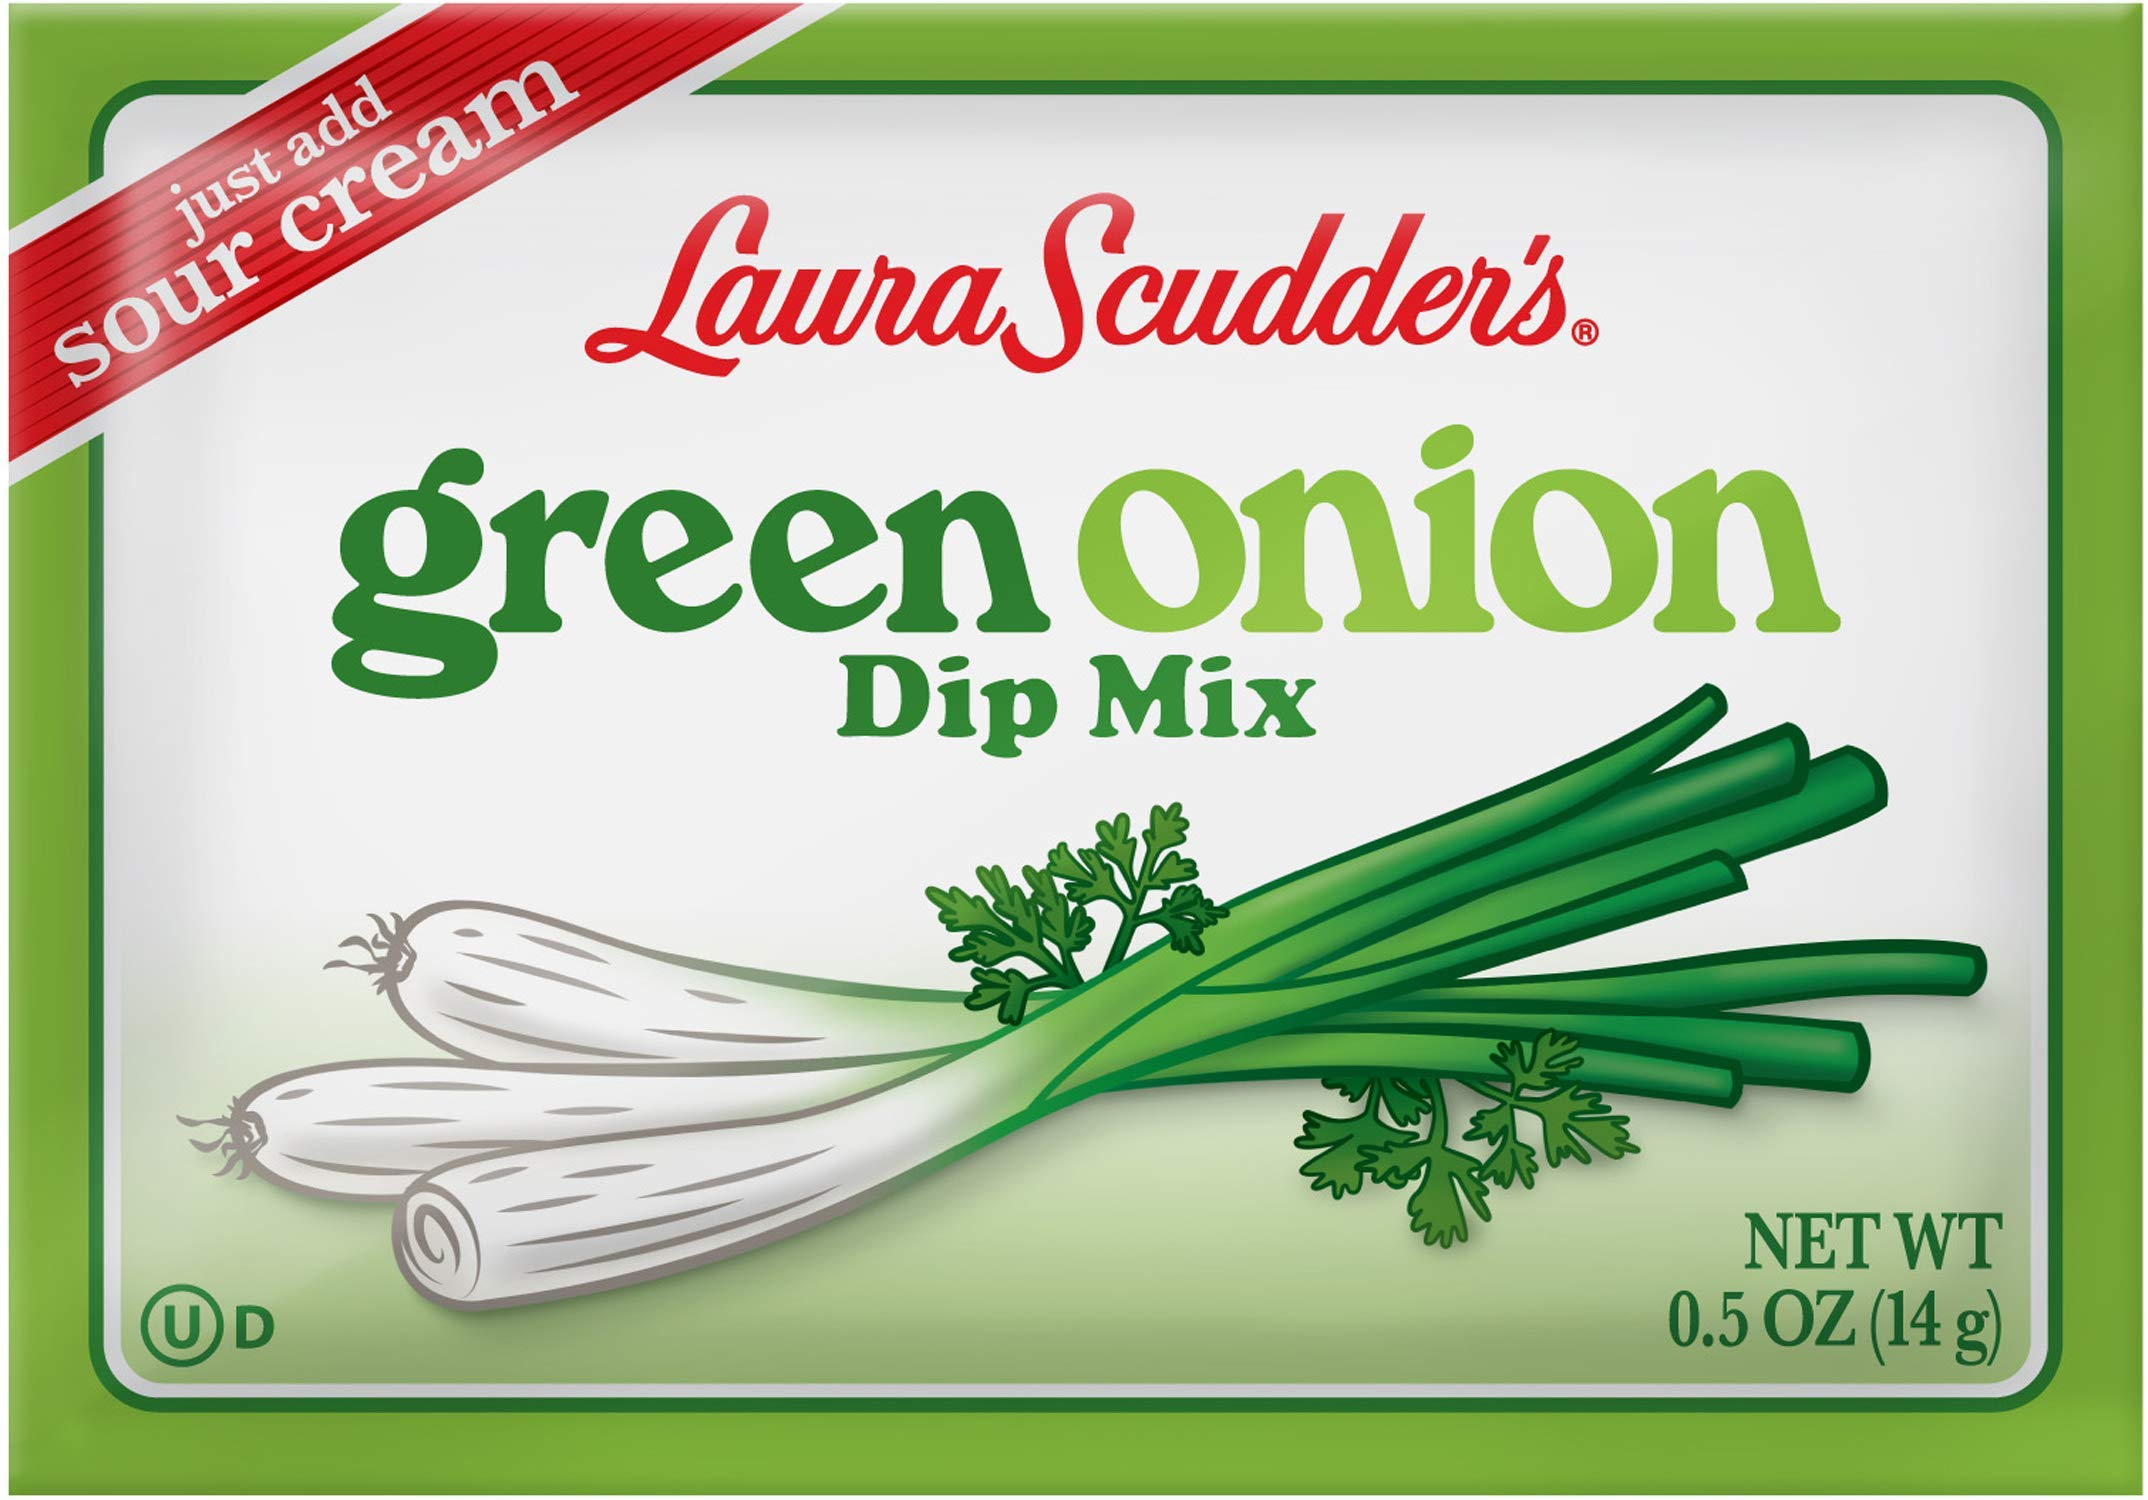 Laura Scudder's Restaurant Dip Mix, Green Onion, 20-Pound by Laura Scudder's (Image #1)